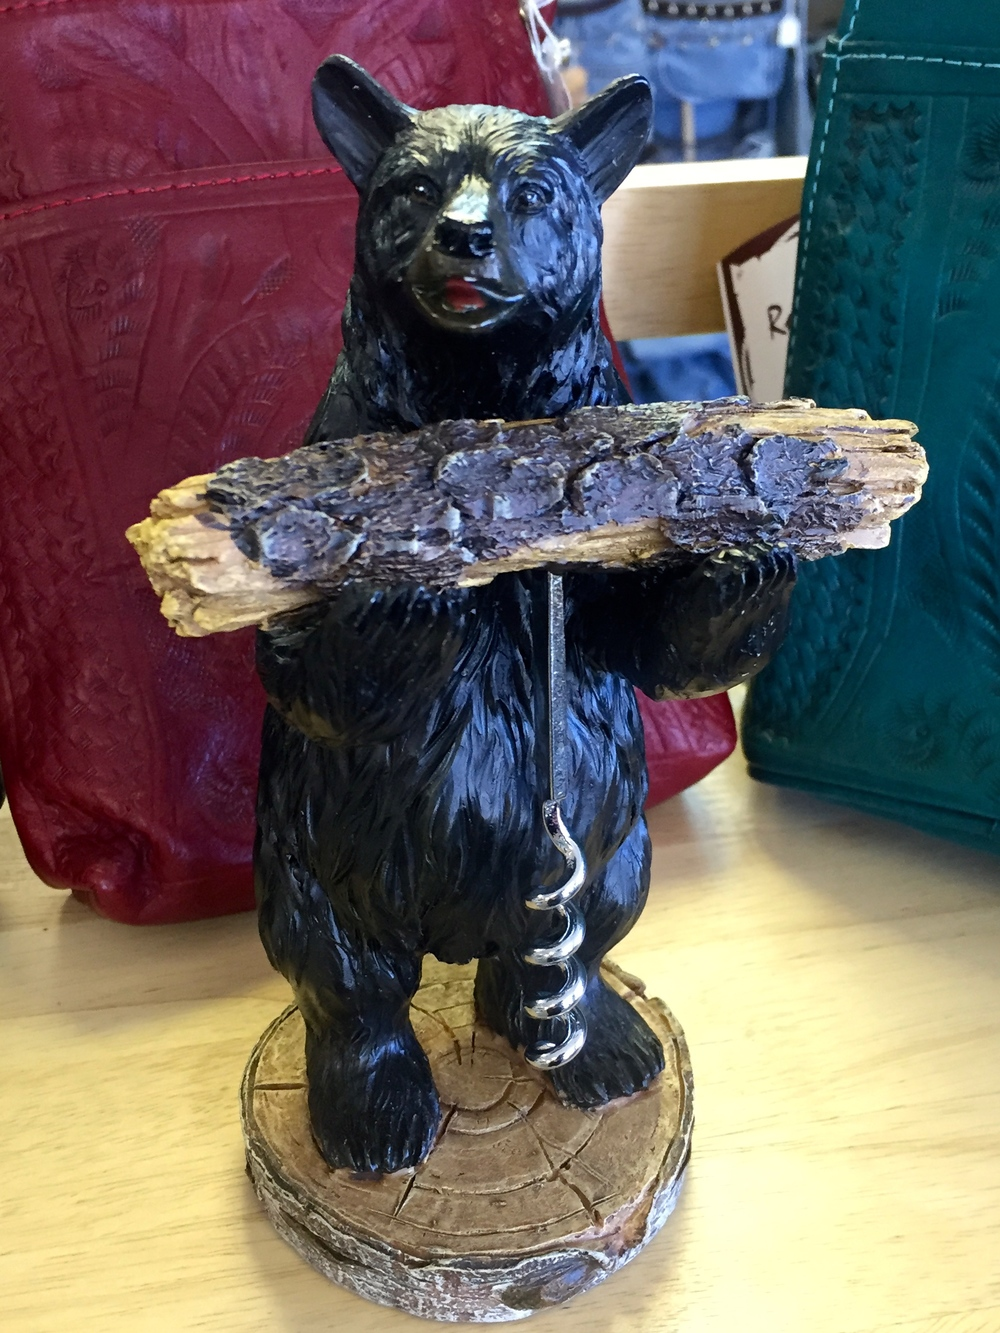 Need to open some wine? Bear Holding Corkscrew is happy to help.